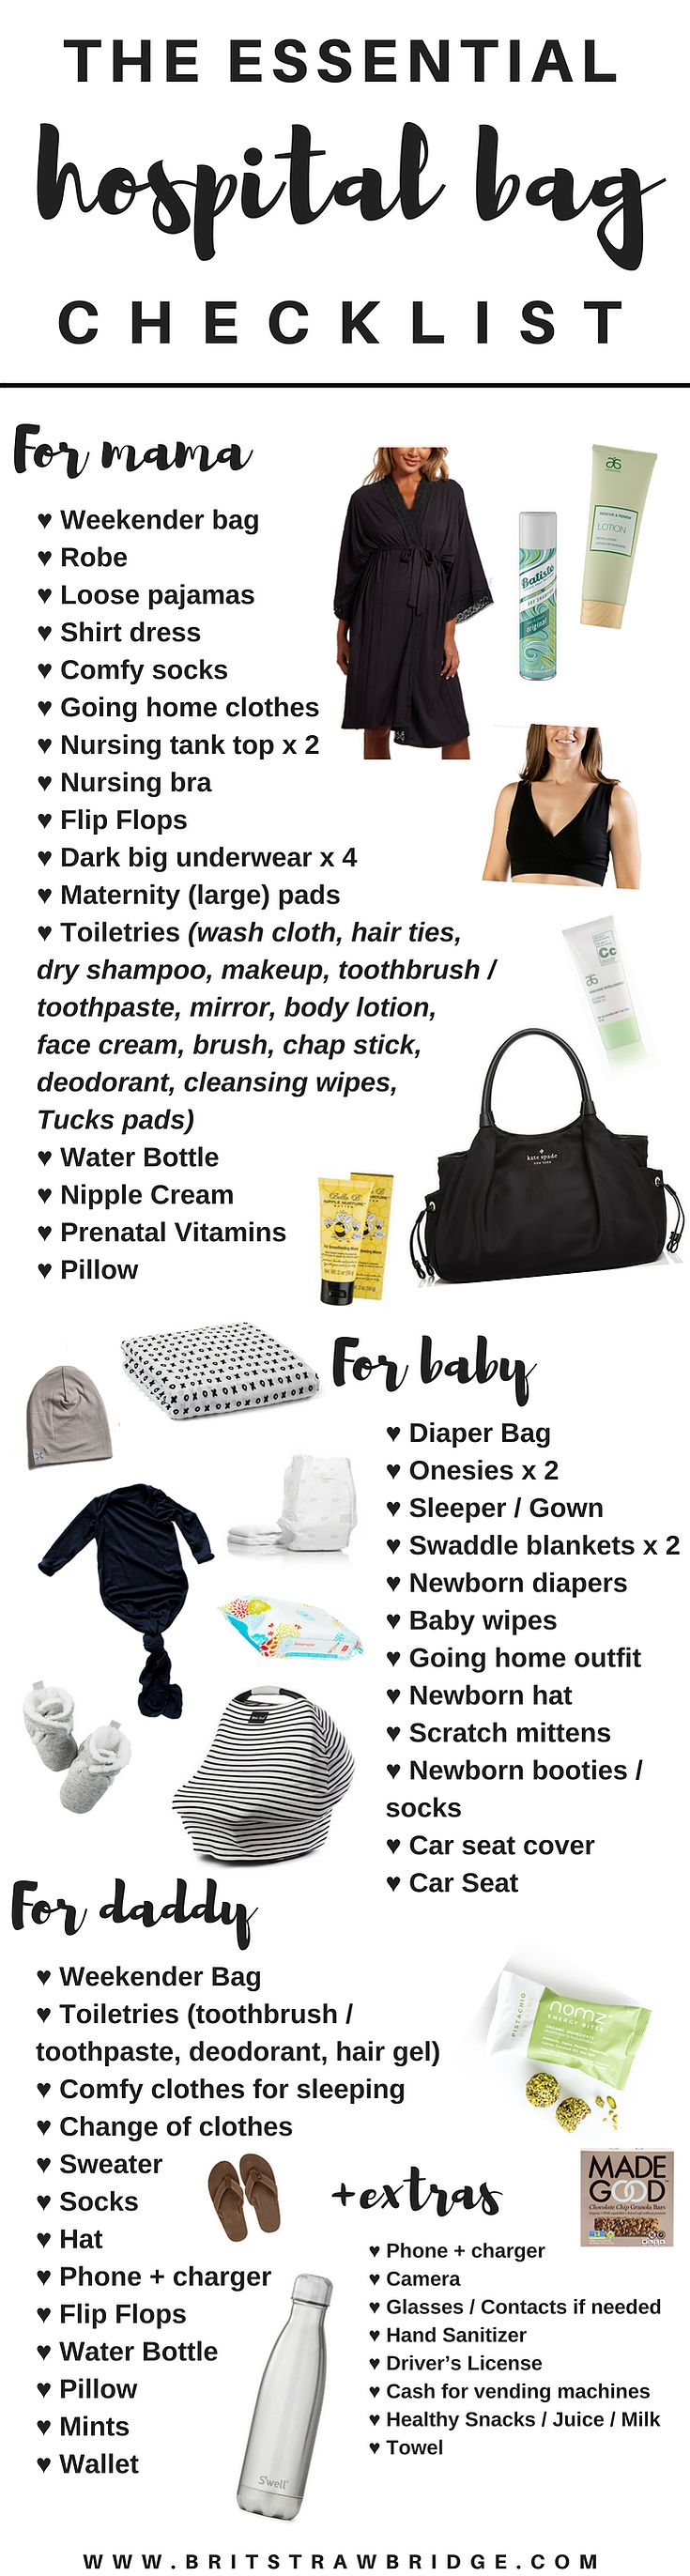 The Essentials Hospital Bag Checklist for mama, daddy & baby. + free checklist printable! #ParentingTips